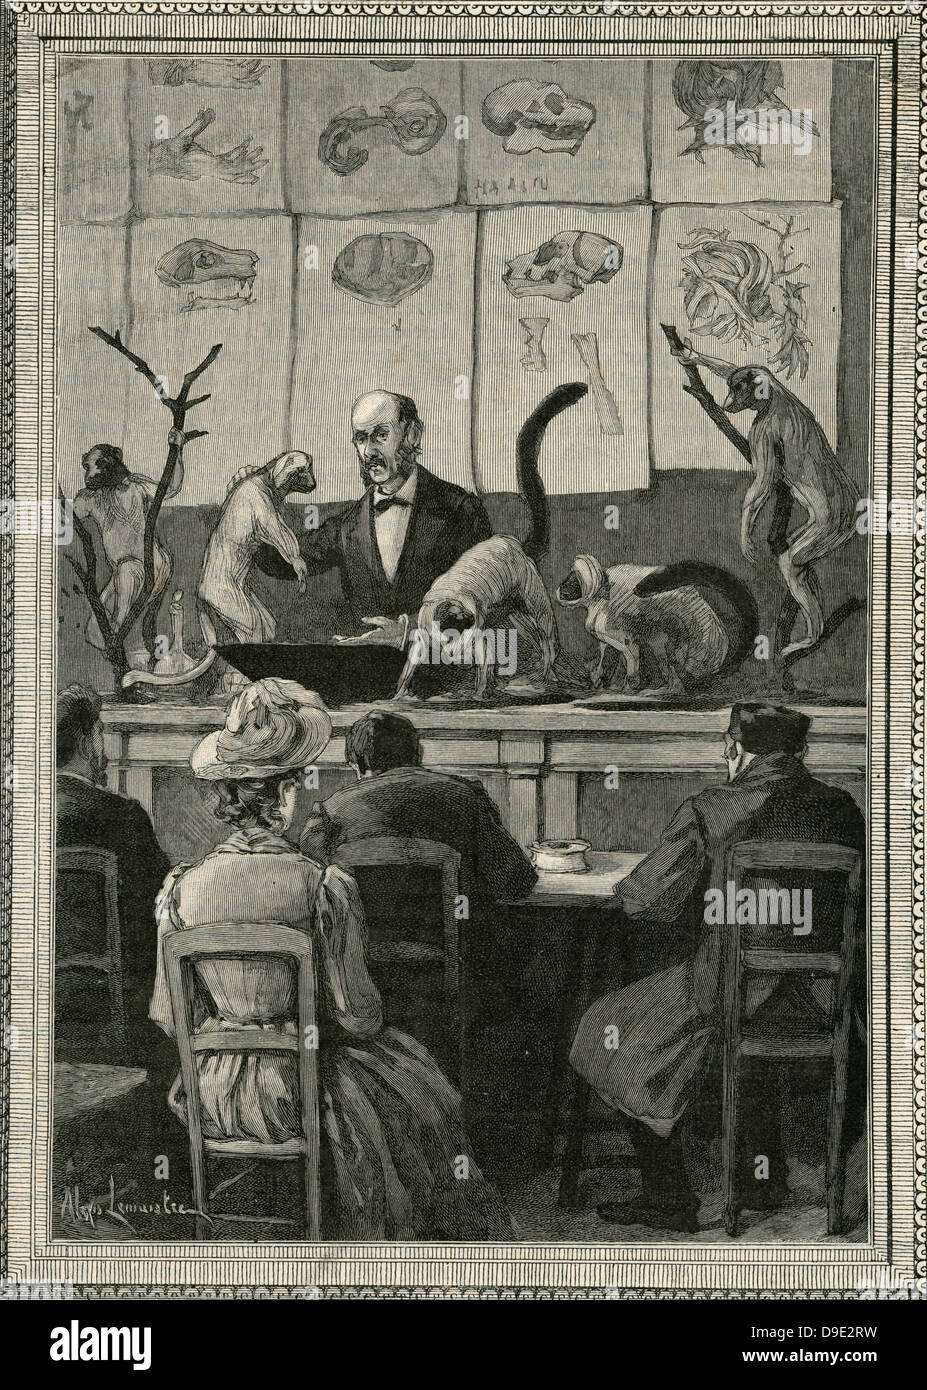 Henri Milne-Edwards (1800-1885) lecturing on zoology at the French Museumof Natural History. - Stock Image